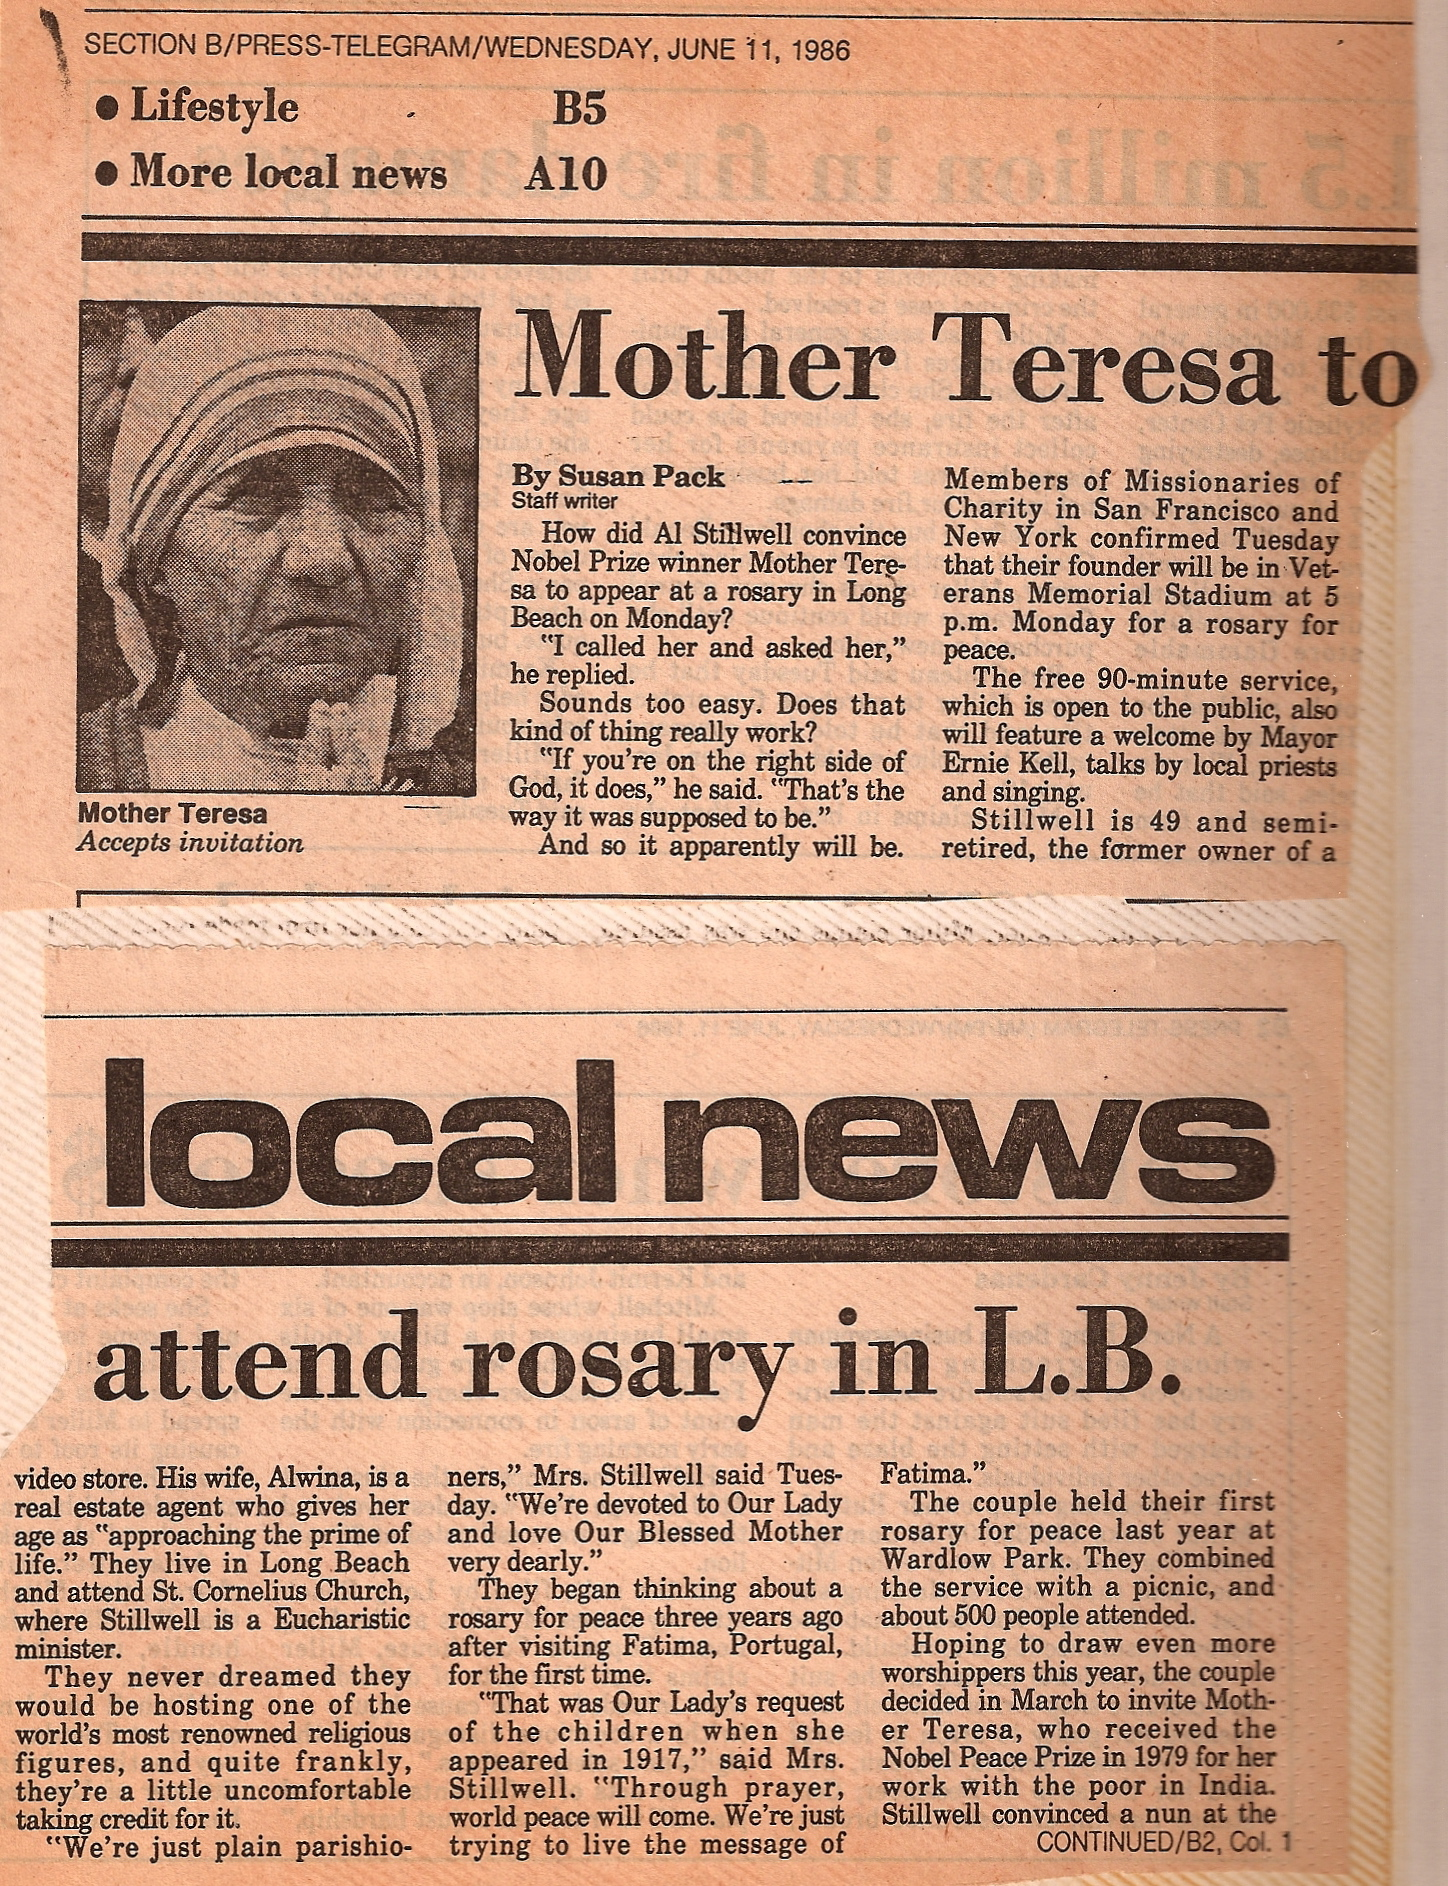 the life and ministry of mother teresa Mother teresa was a roman catholic religious sister who was known for her life- long vow of helping the poor she was born to roman.